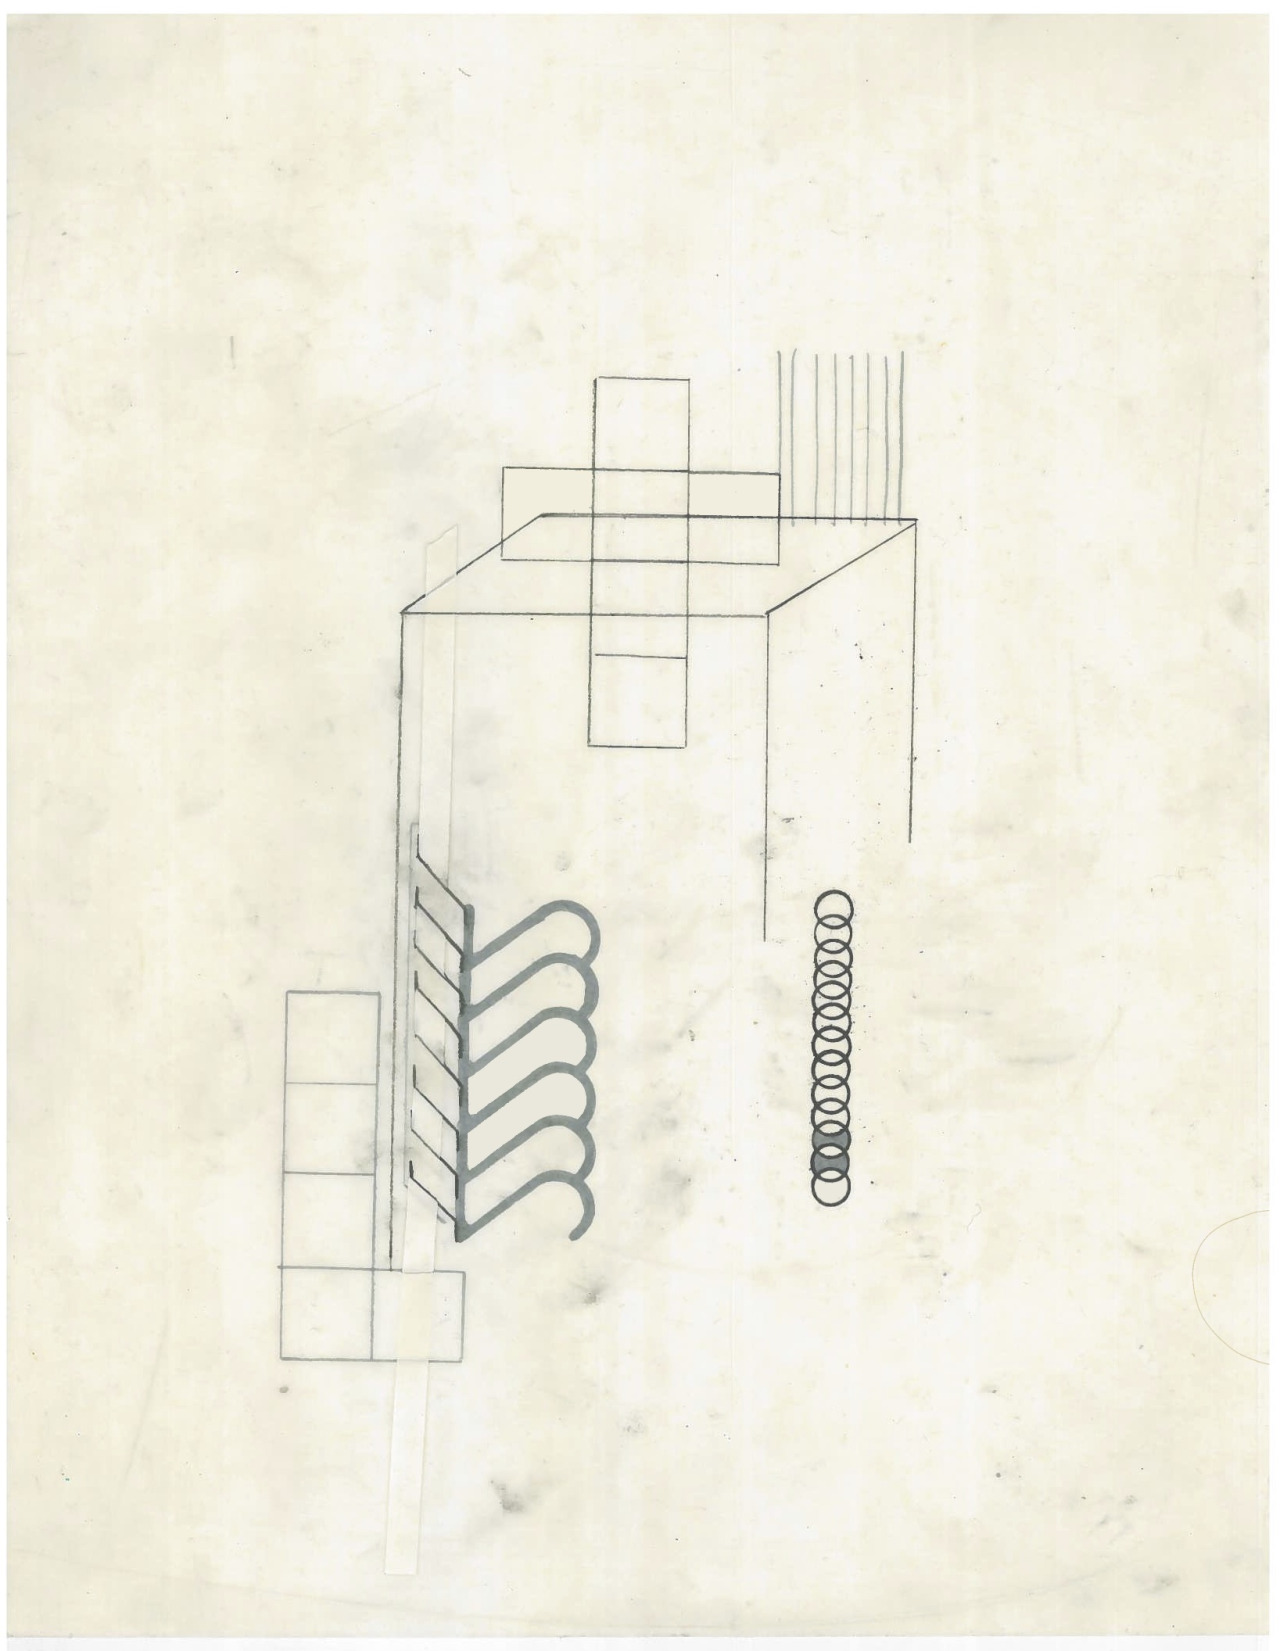 Untitled (the city, observations 19B)  Pencil, collage and layered oiled fabriano paper.   279mm x 216mm  December 2013